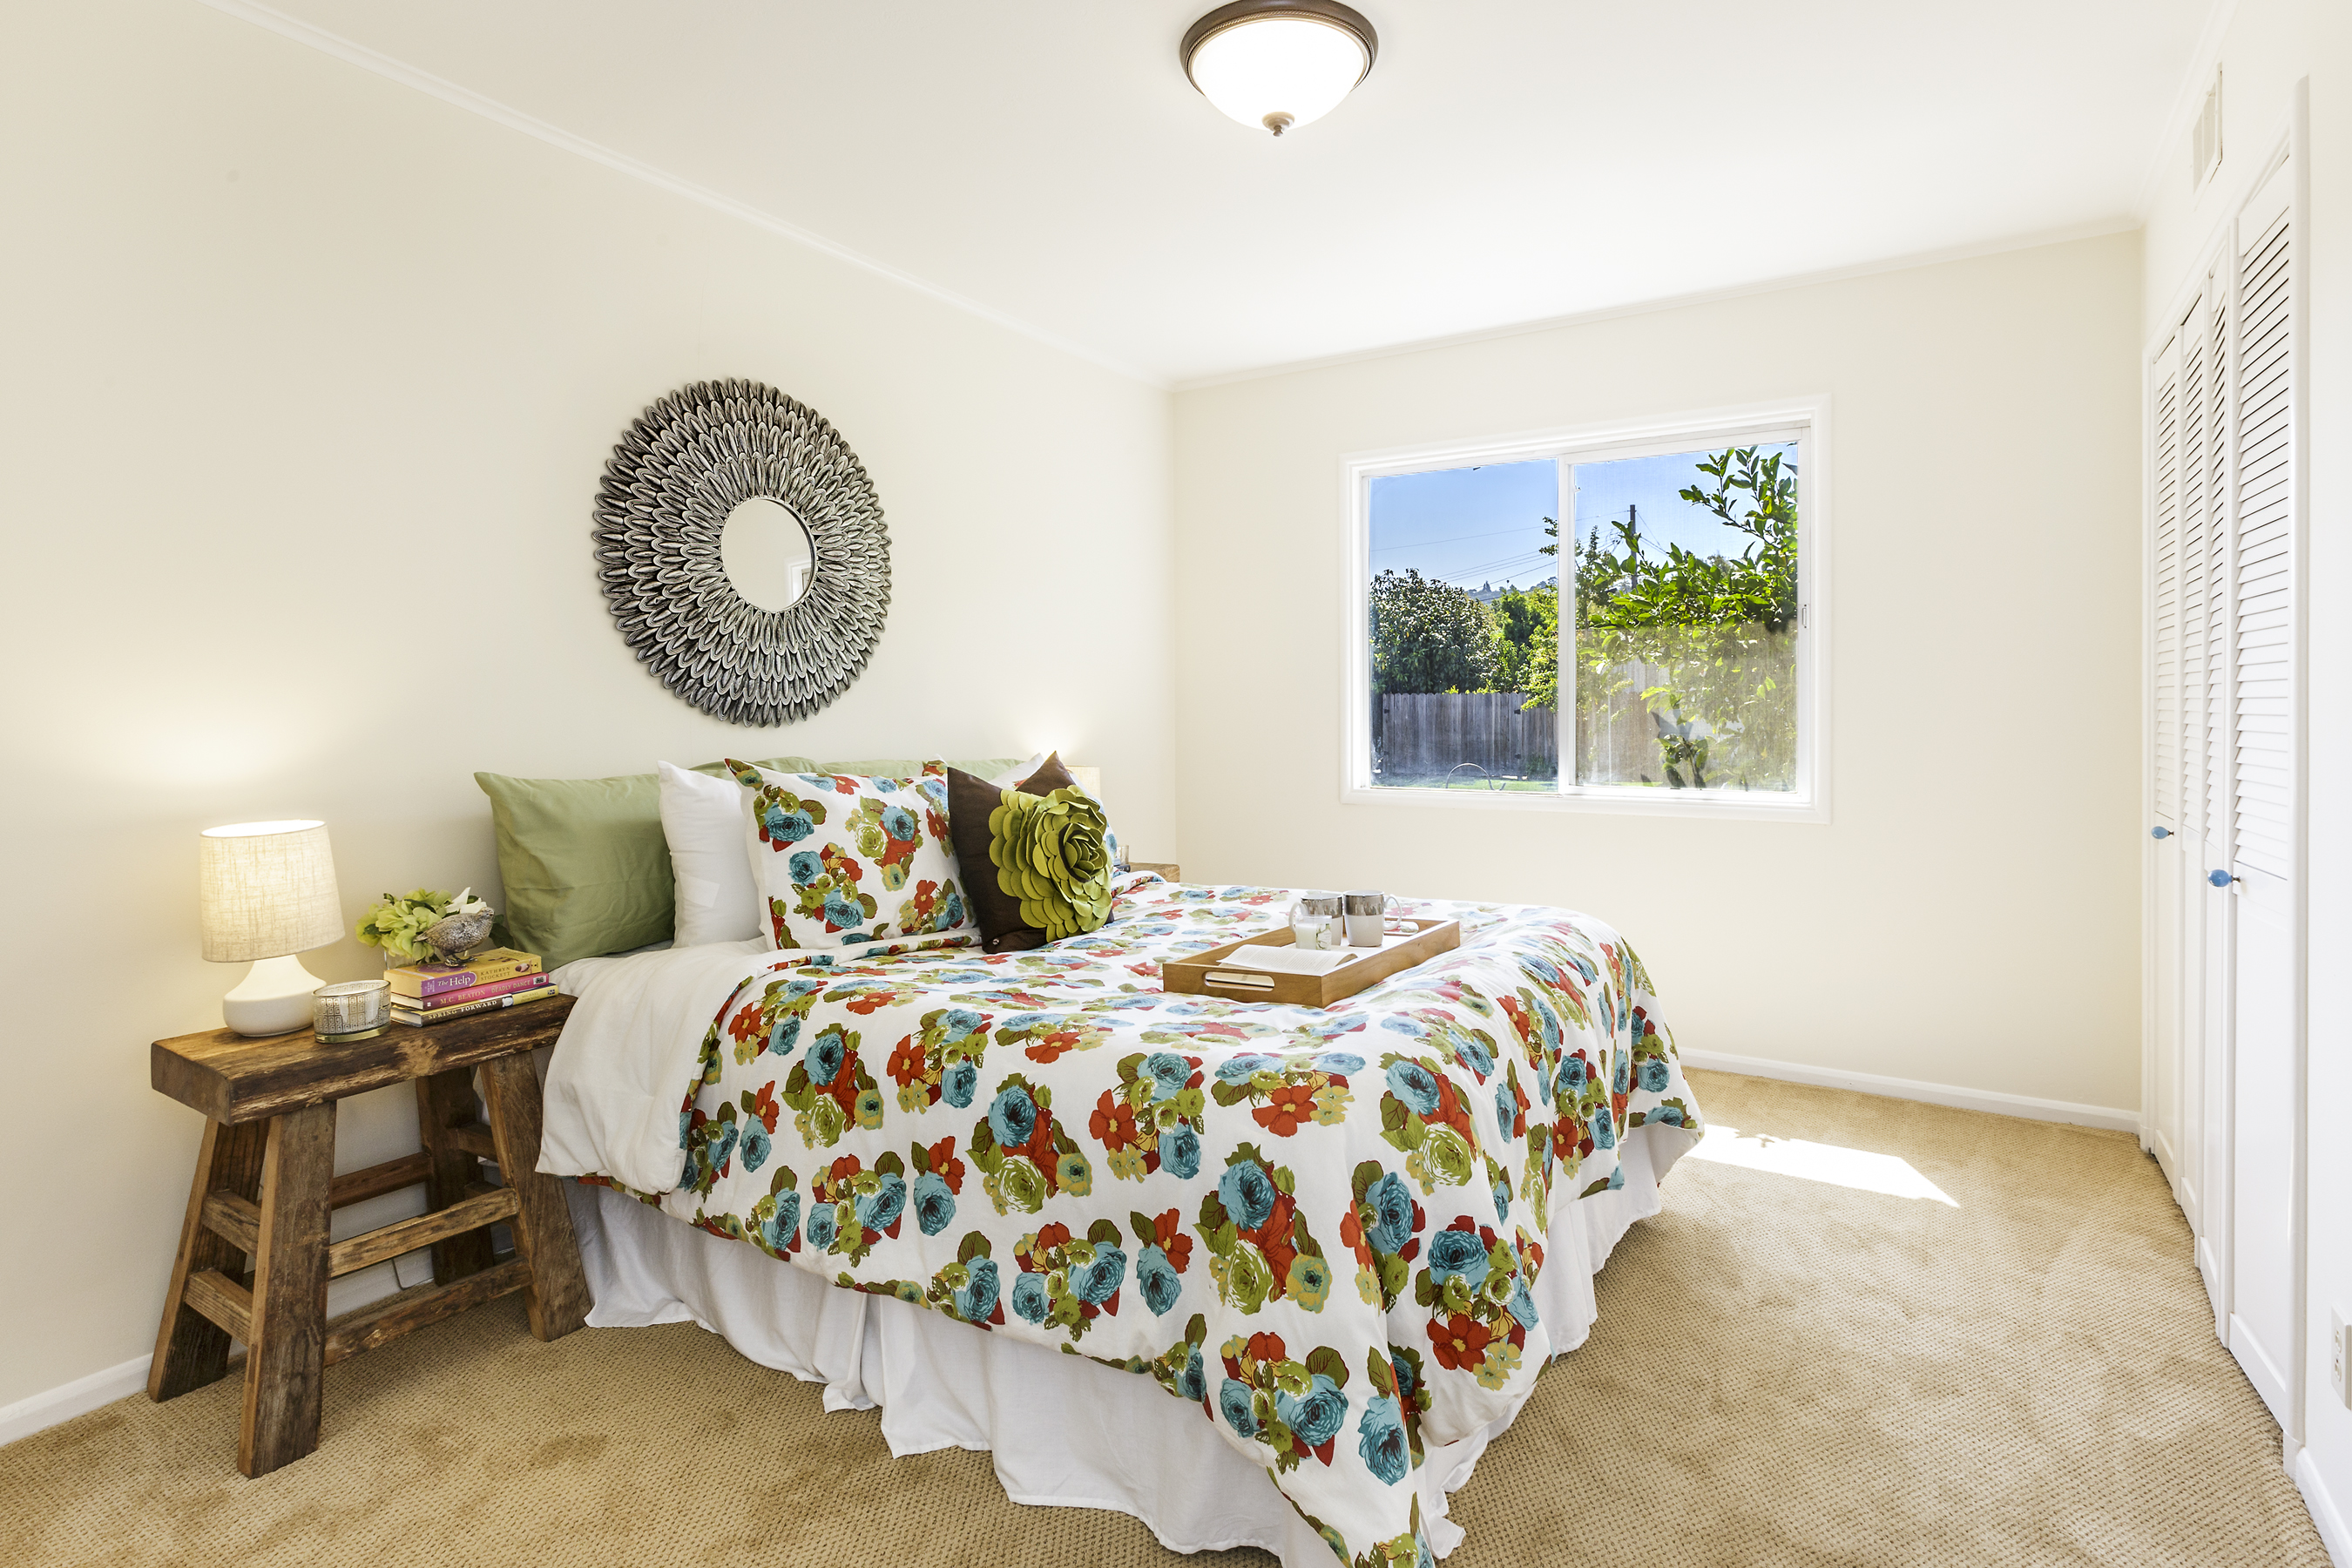 16-3115AlamedaDeLasPulgas-2bed-high-res